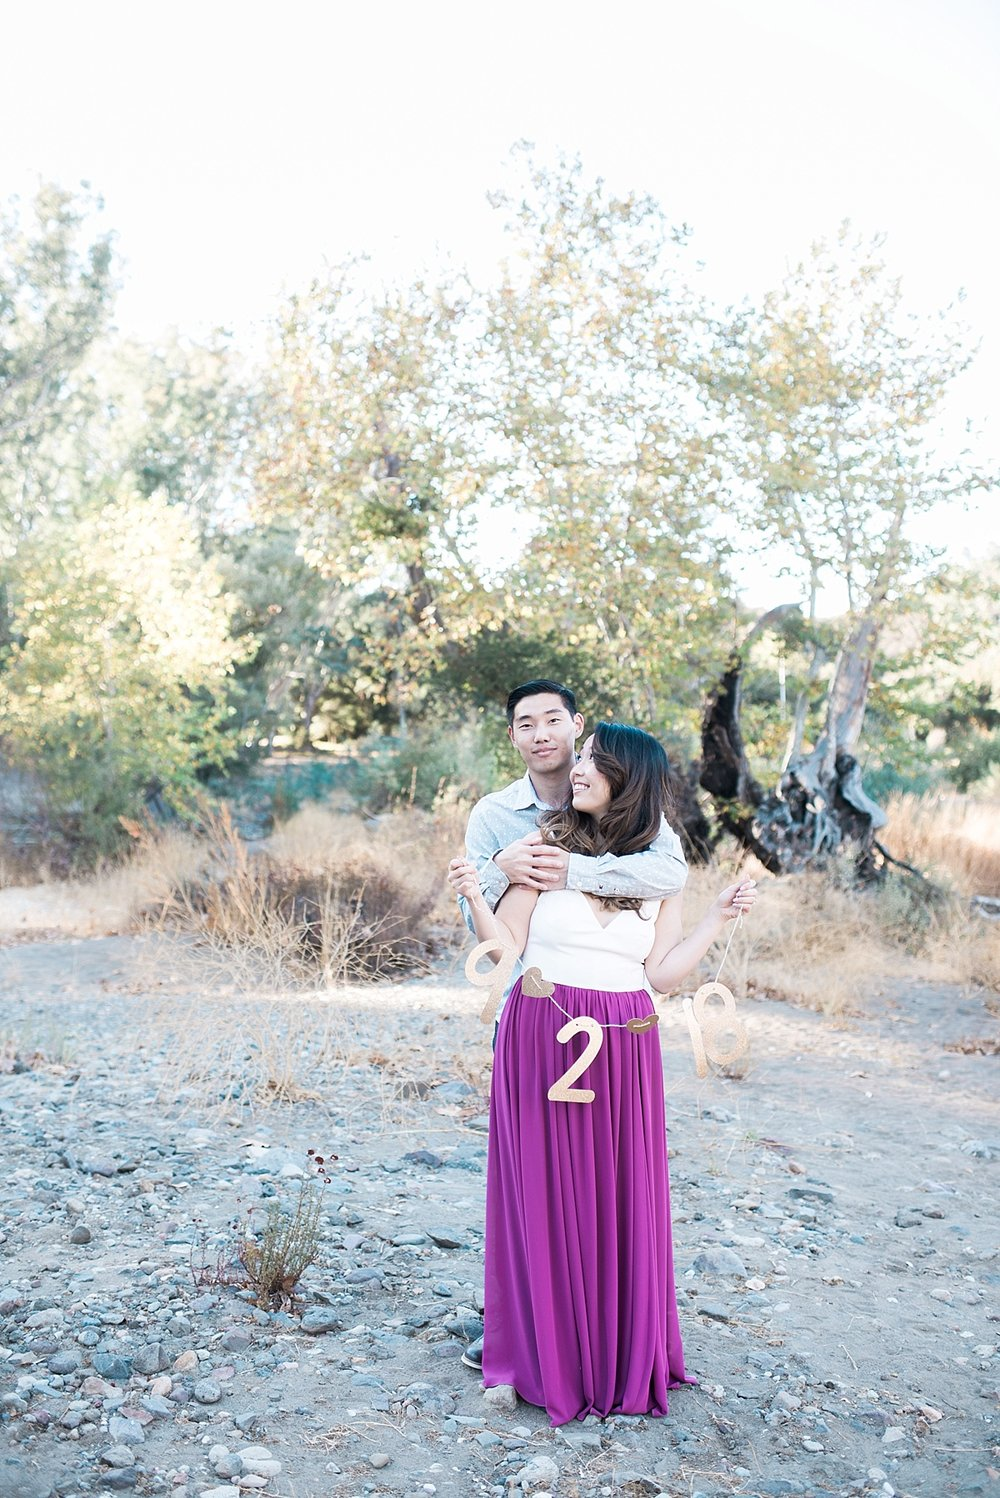 Malibu-Engagement-Photographer-Ally-Jeff-Carissa-Woo-Photography_0019.jpg